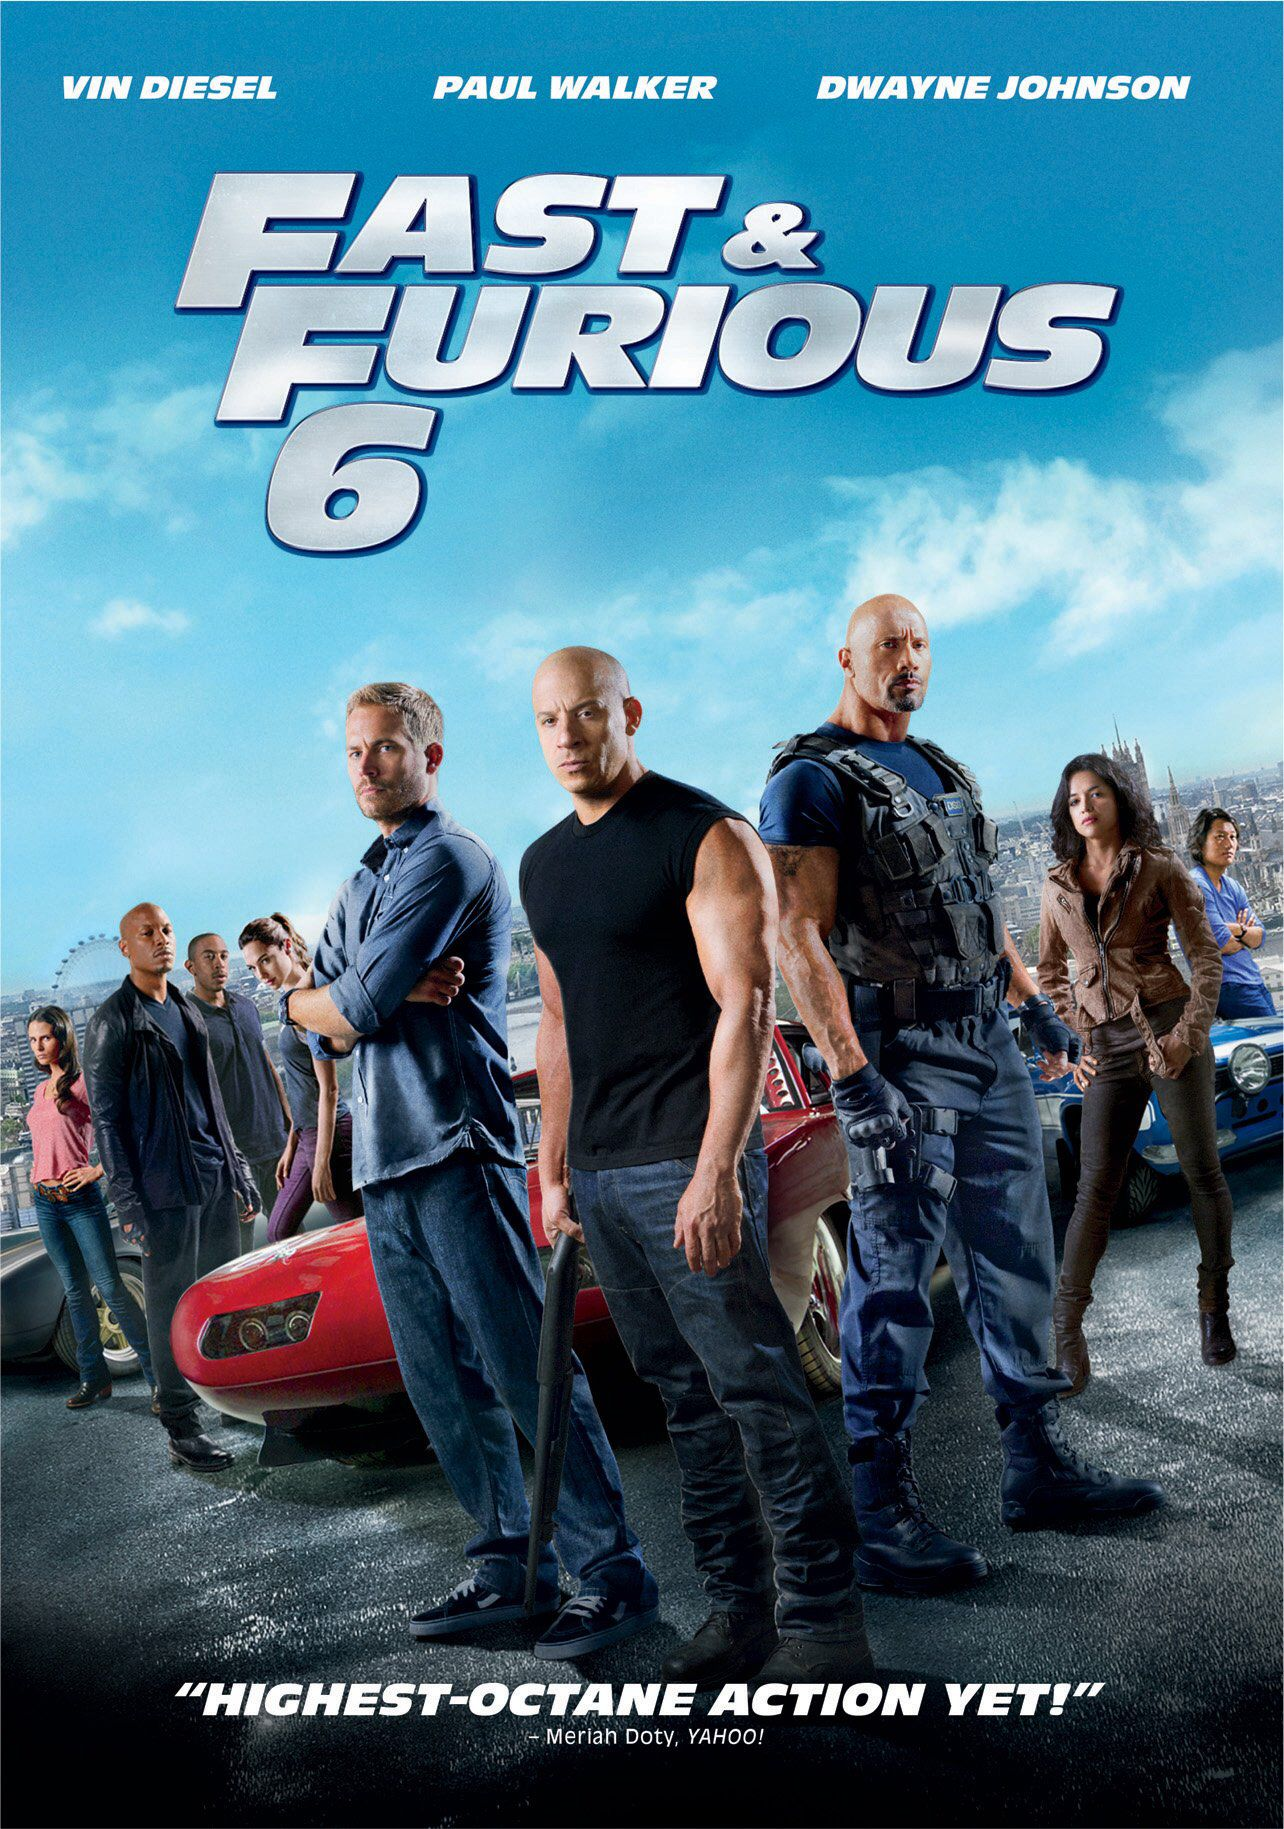 Fast Furious 6 2013 Fast And Furious Furious 6 Blu Ray